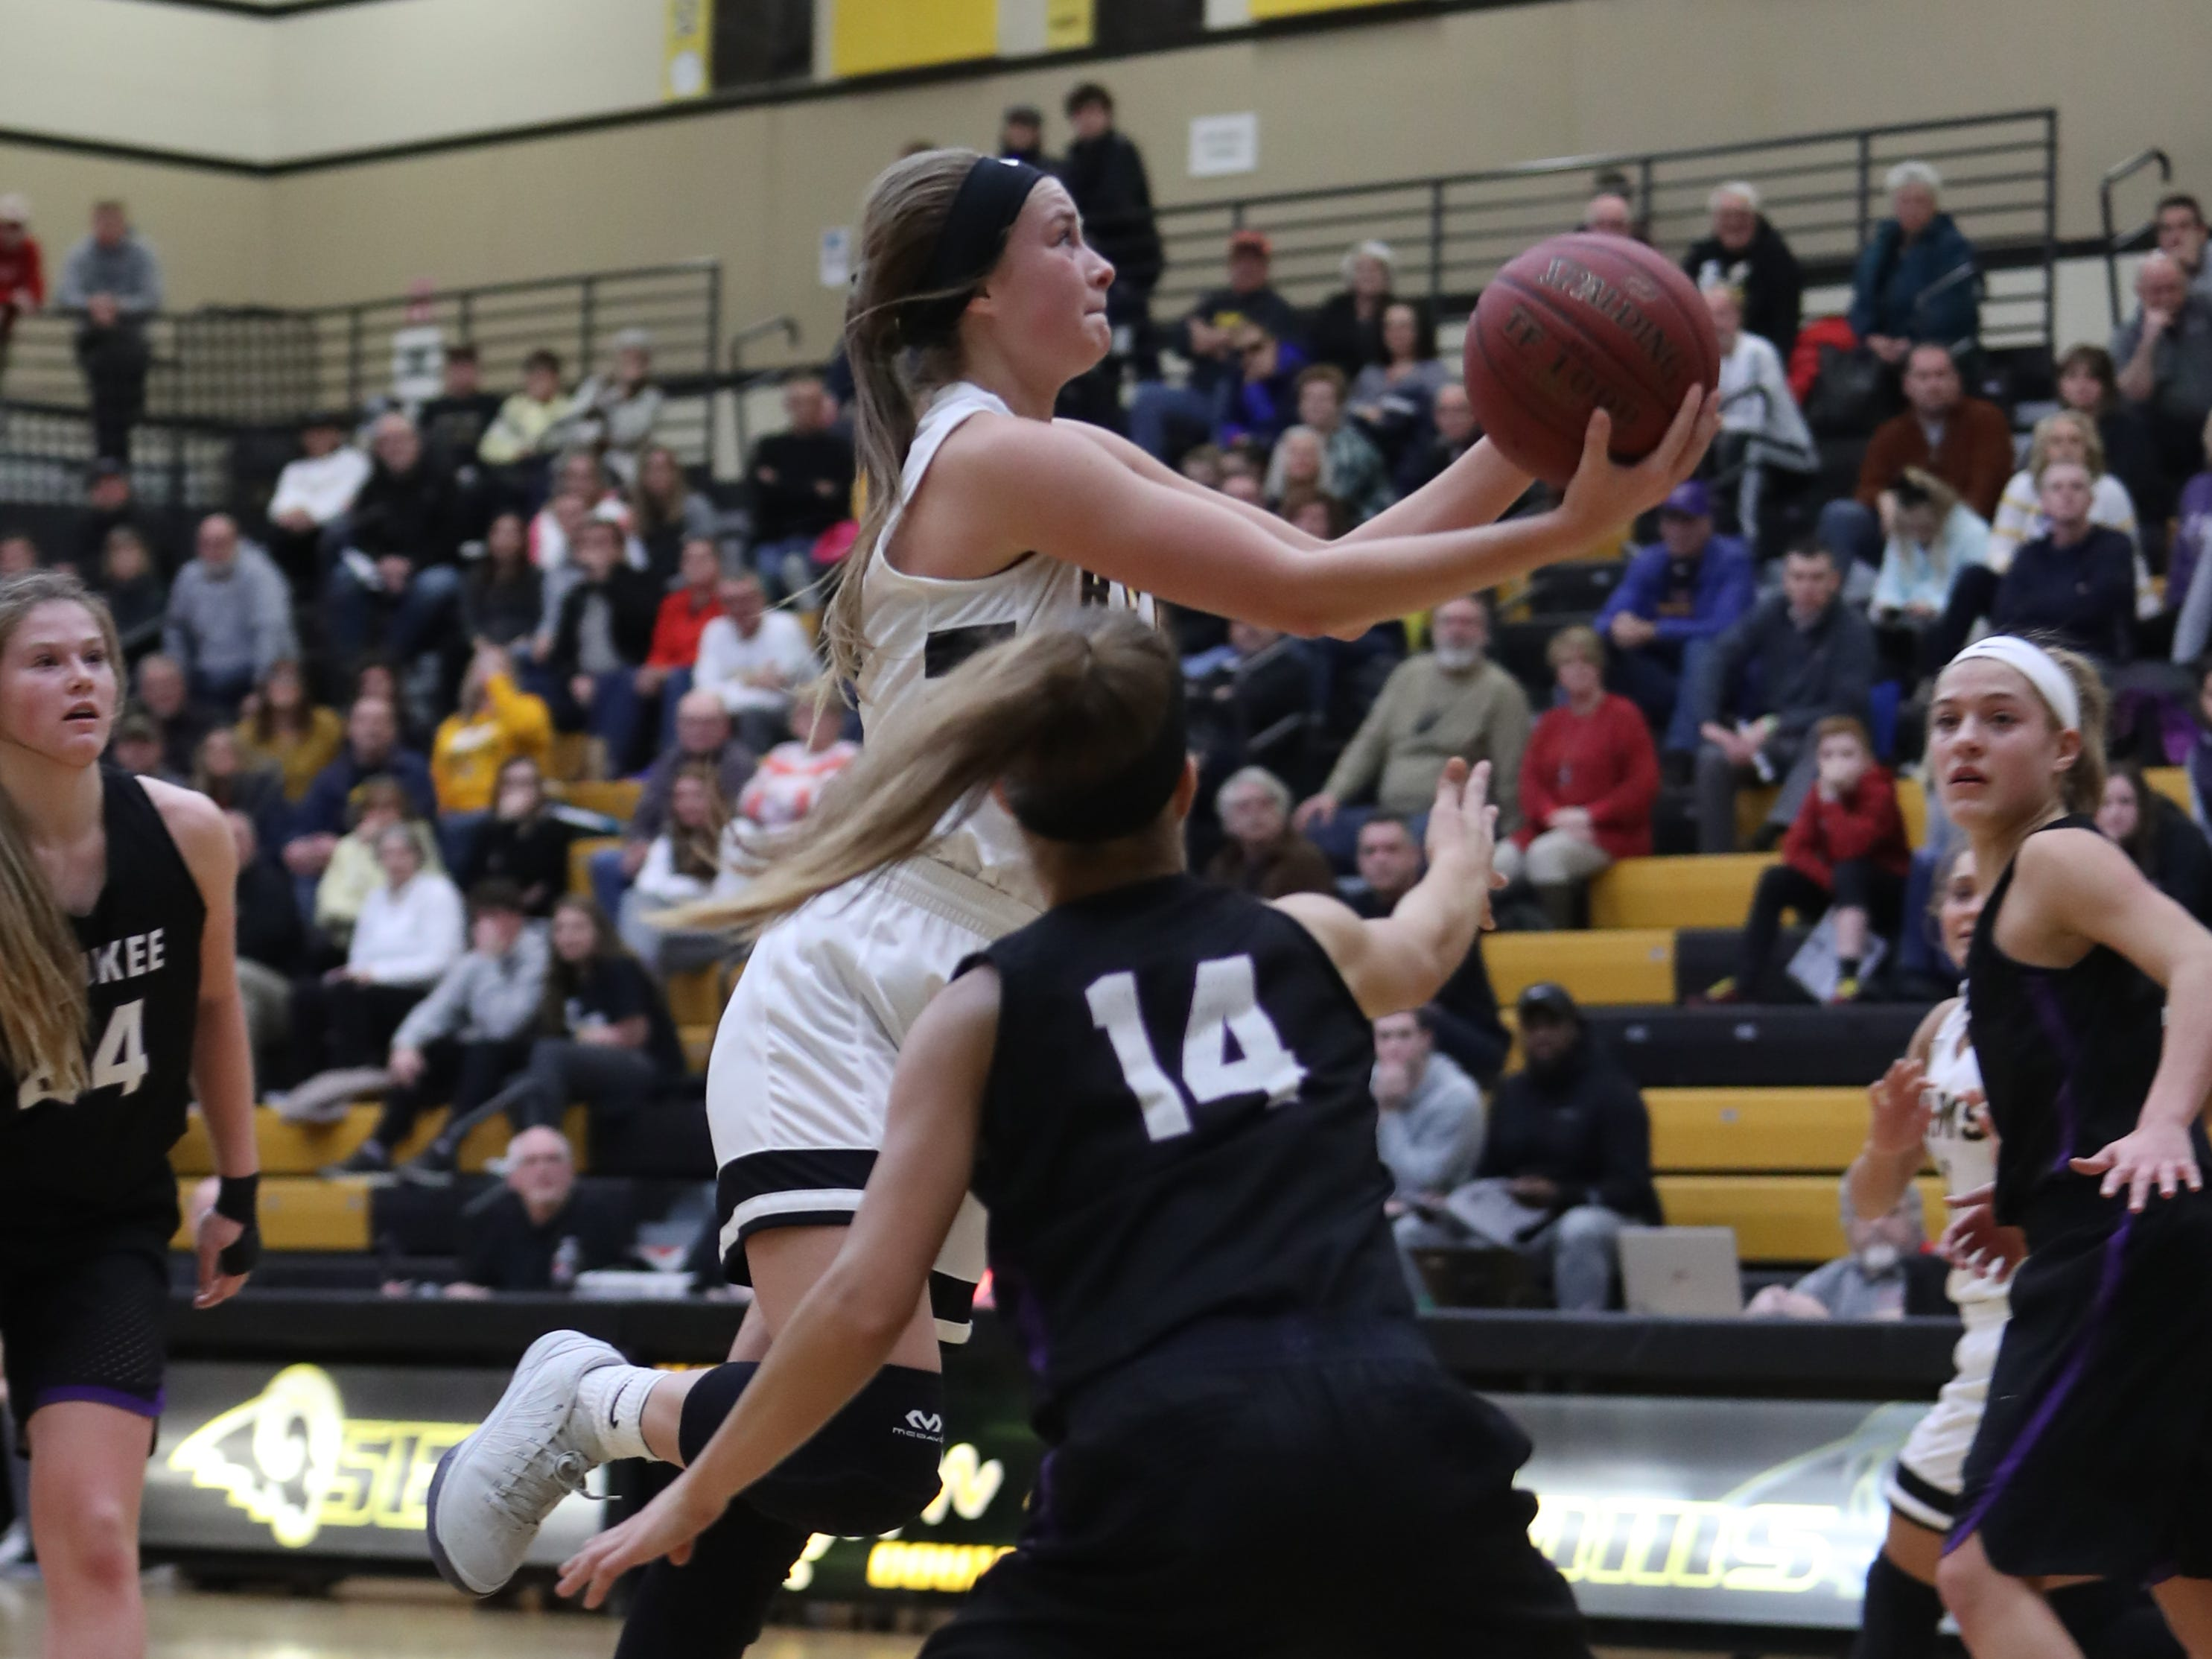 Southeast Polk Rams' Maggie McGraw (32) drives the lane against the Waukee Warriors during a game Feb. 1, 2019 at Southeast Polk High School.